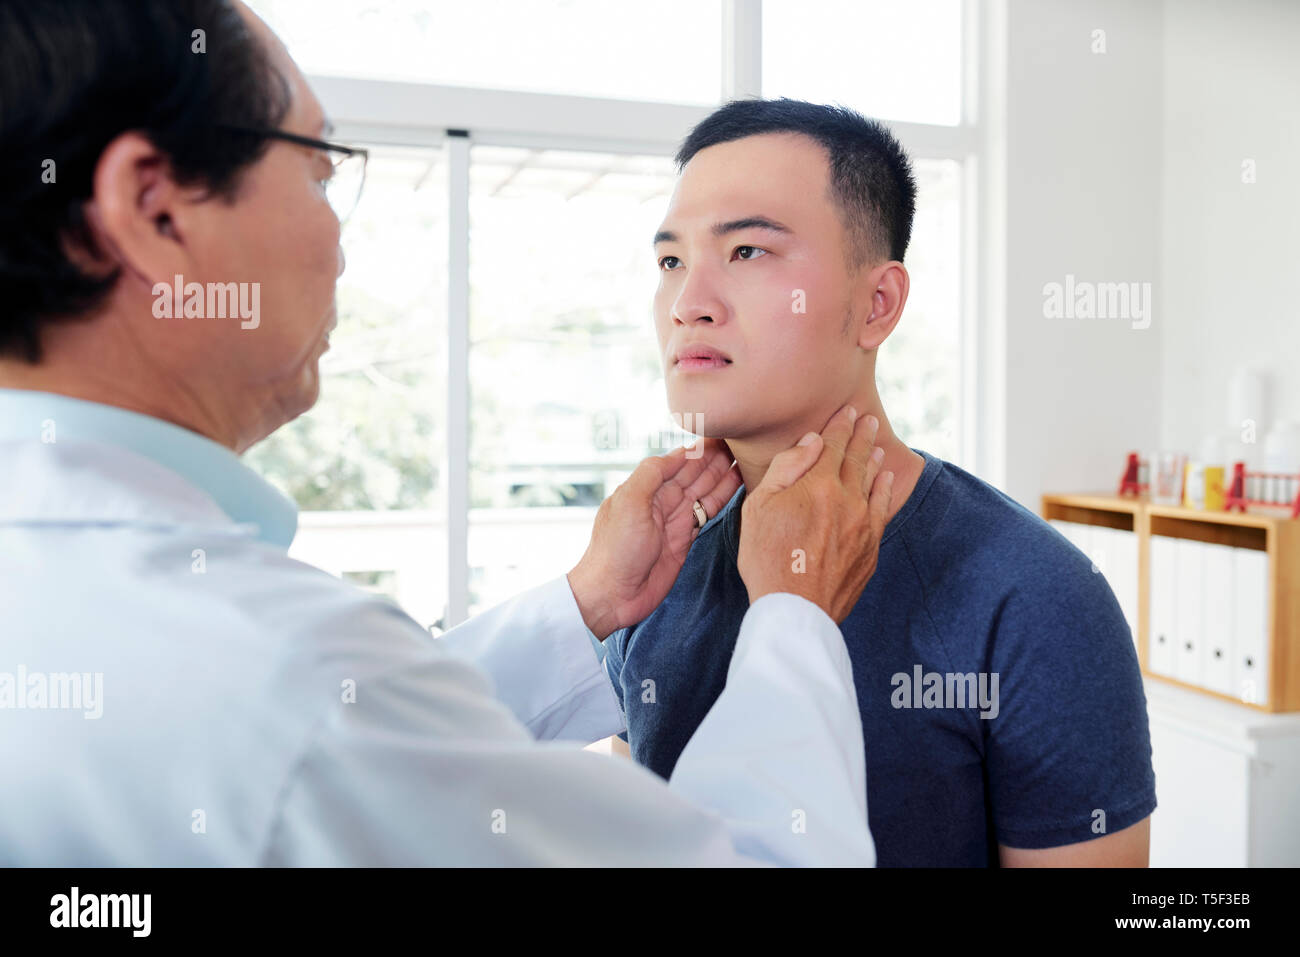 Endocrynologist checking thyroid of patient - Stock Image